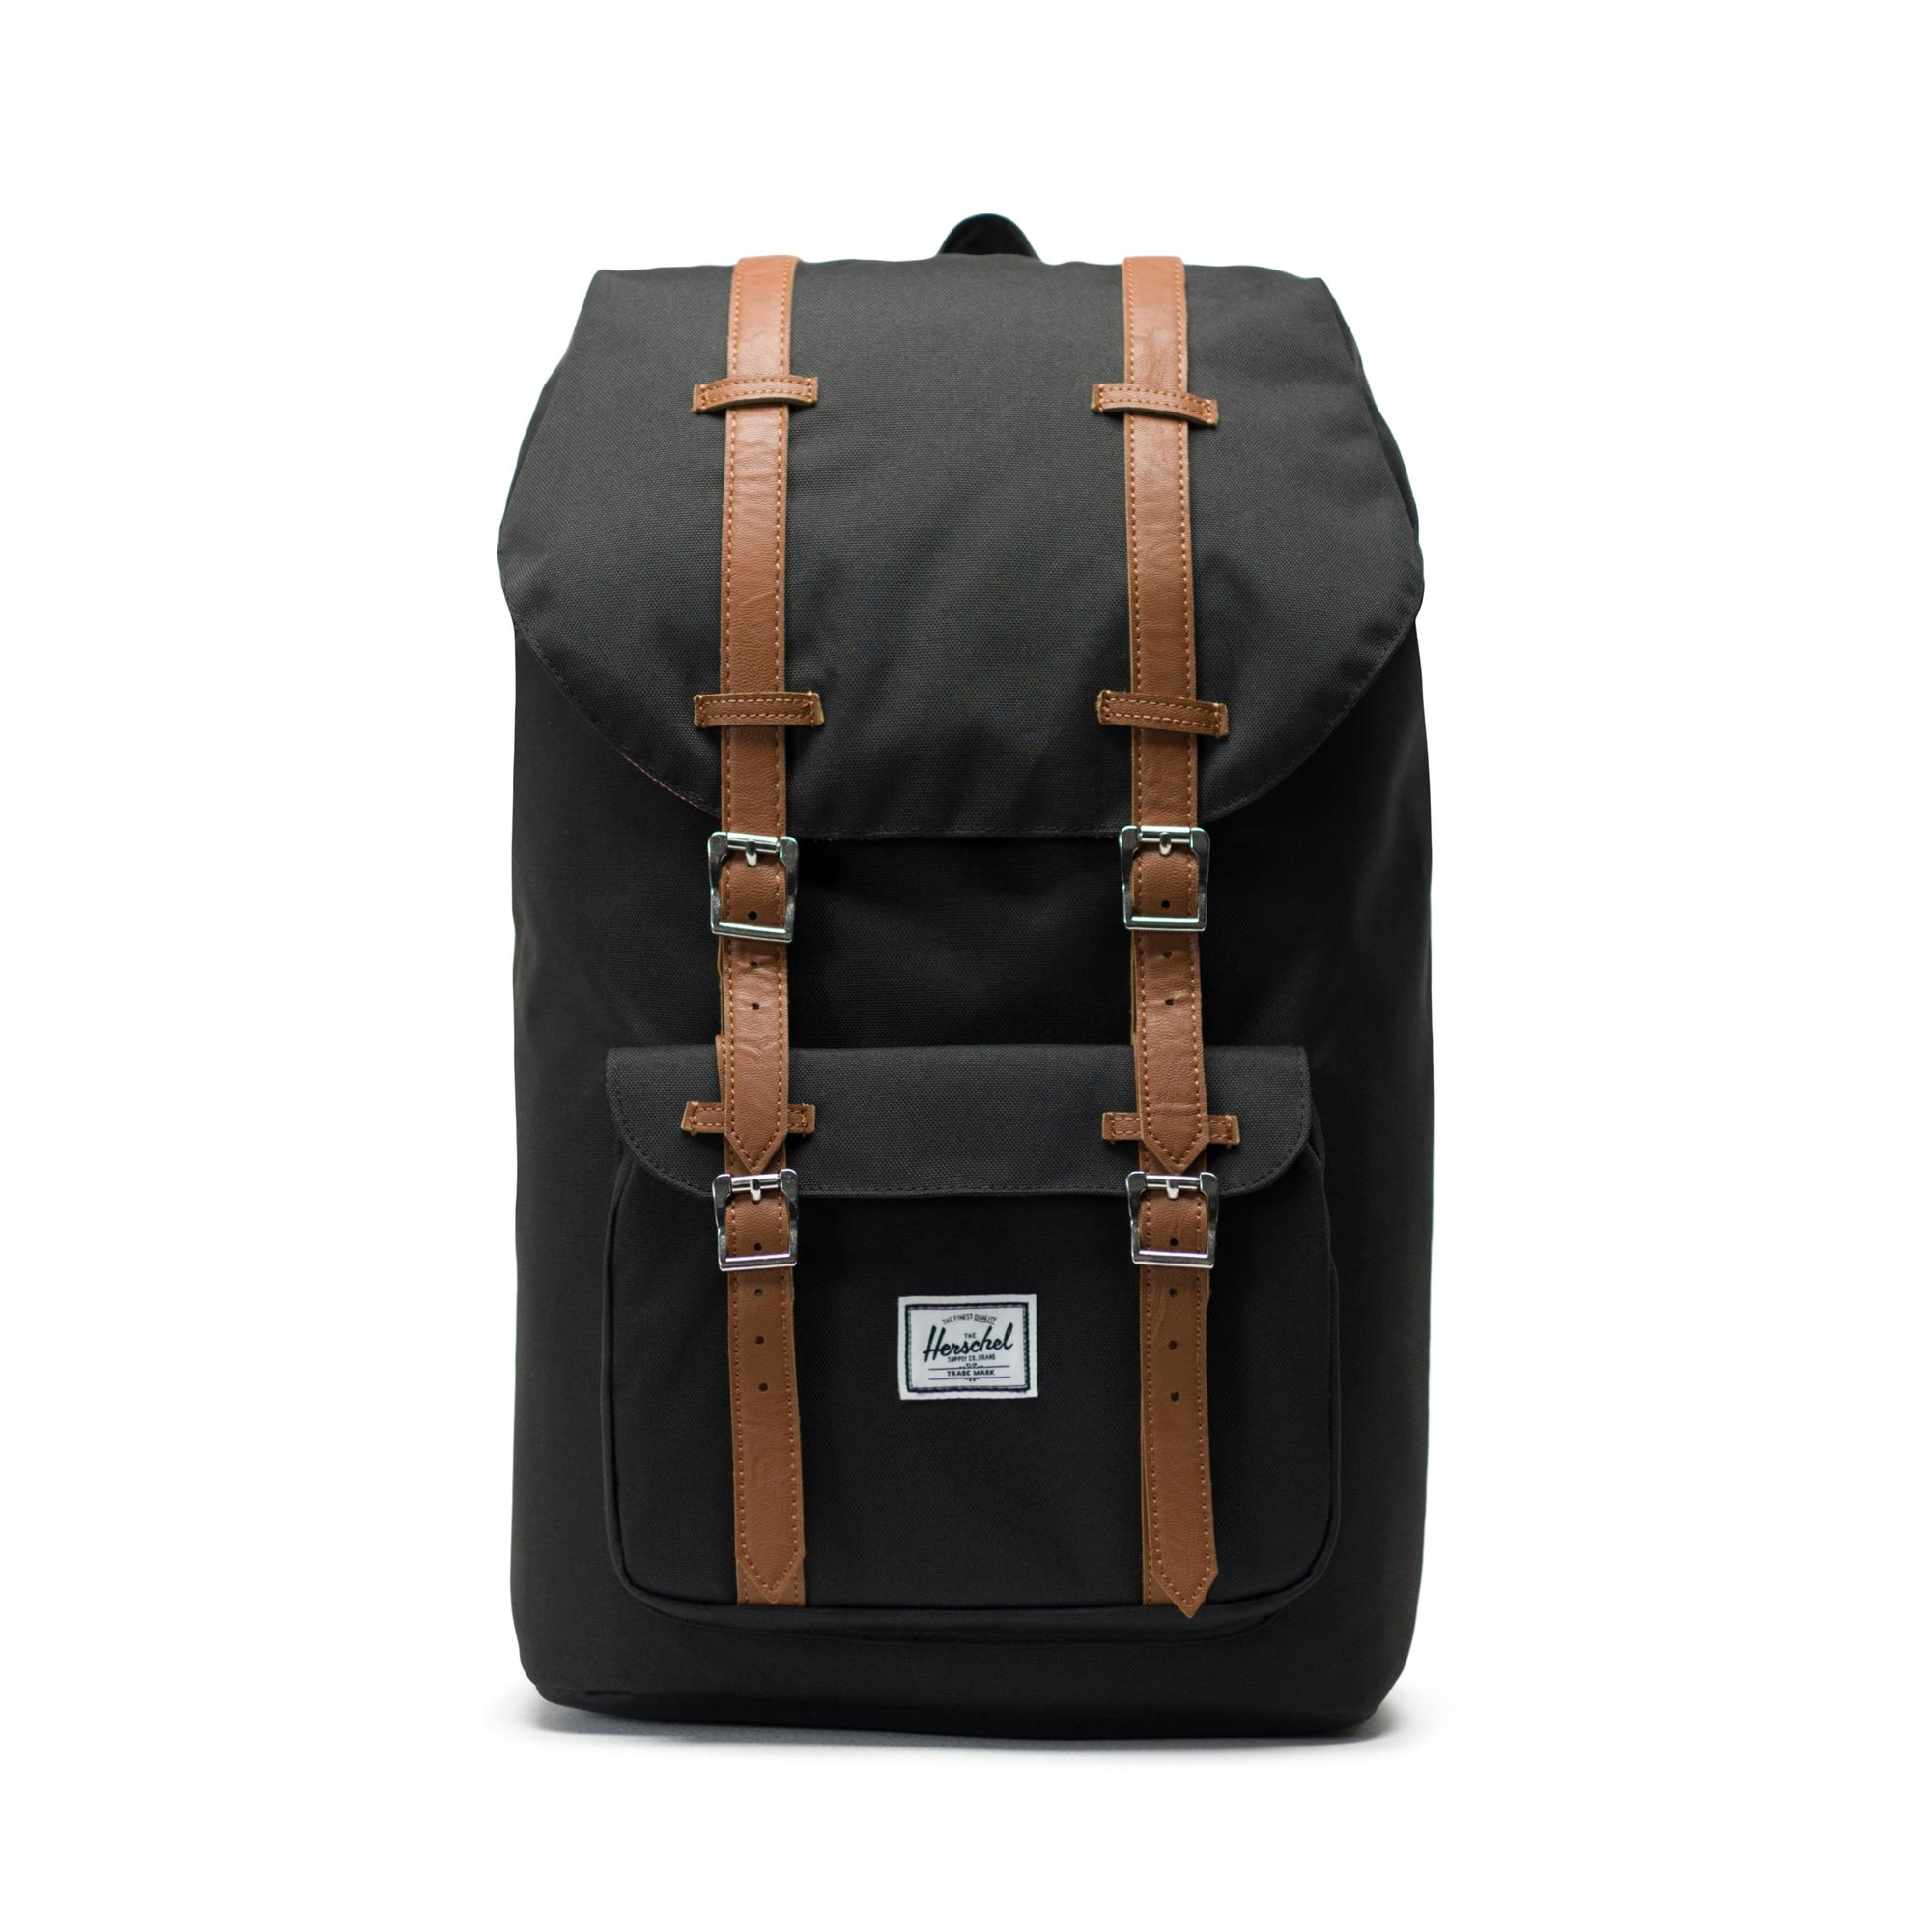 0a5e6beae70e Herschel Little America Backpack